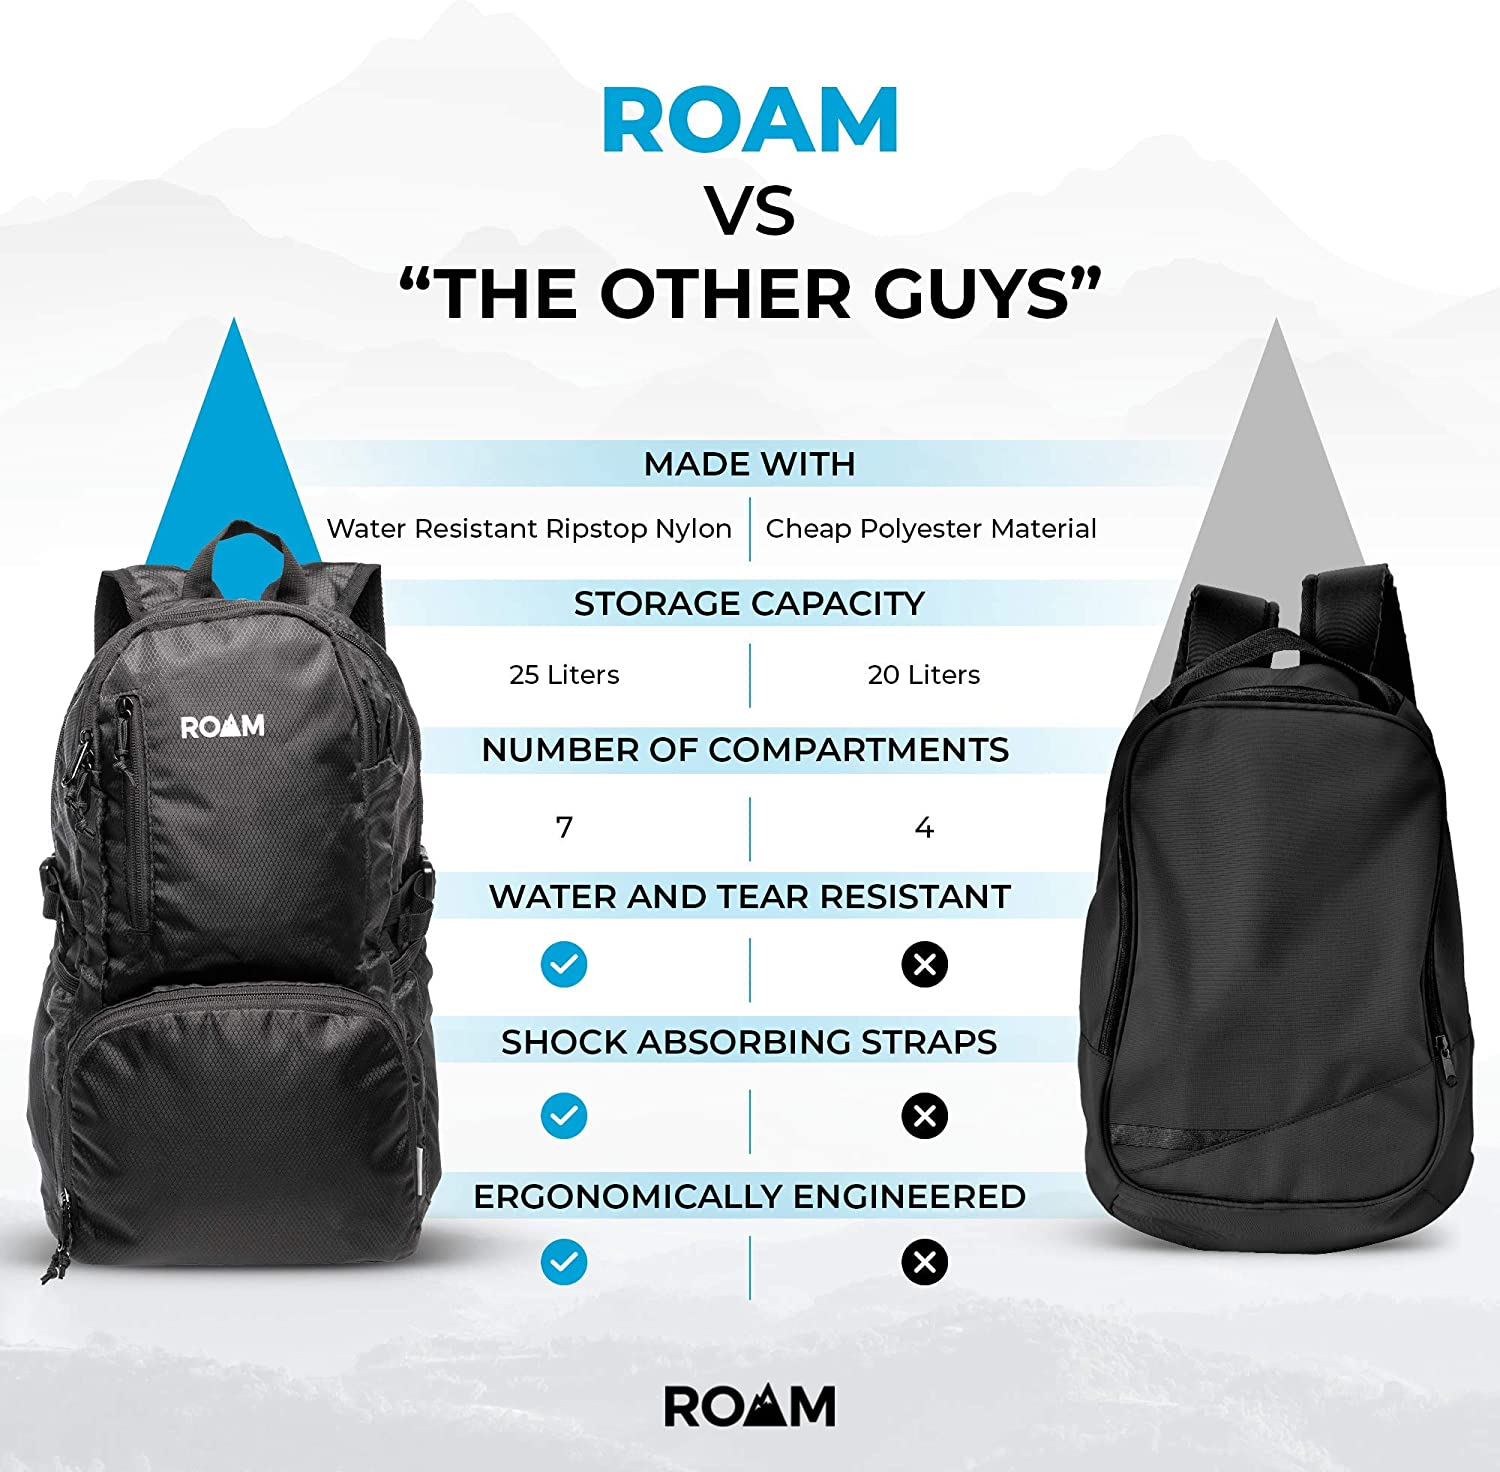 Backpacking Hiking Daypack for Travel 25L Durable Tear-Resistant Nylon Weave Beach, Lightweight Foldable Daypack Water-Resistant Outdoors Roam Packable Backpack Rucksack Camping